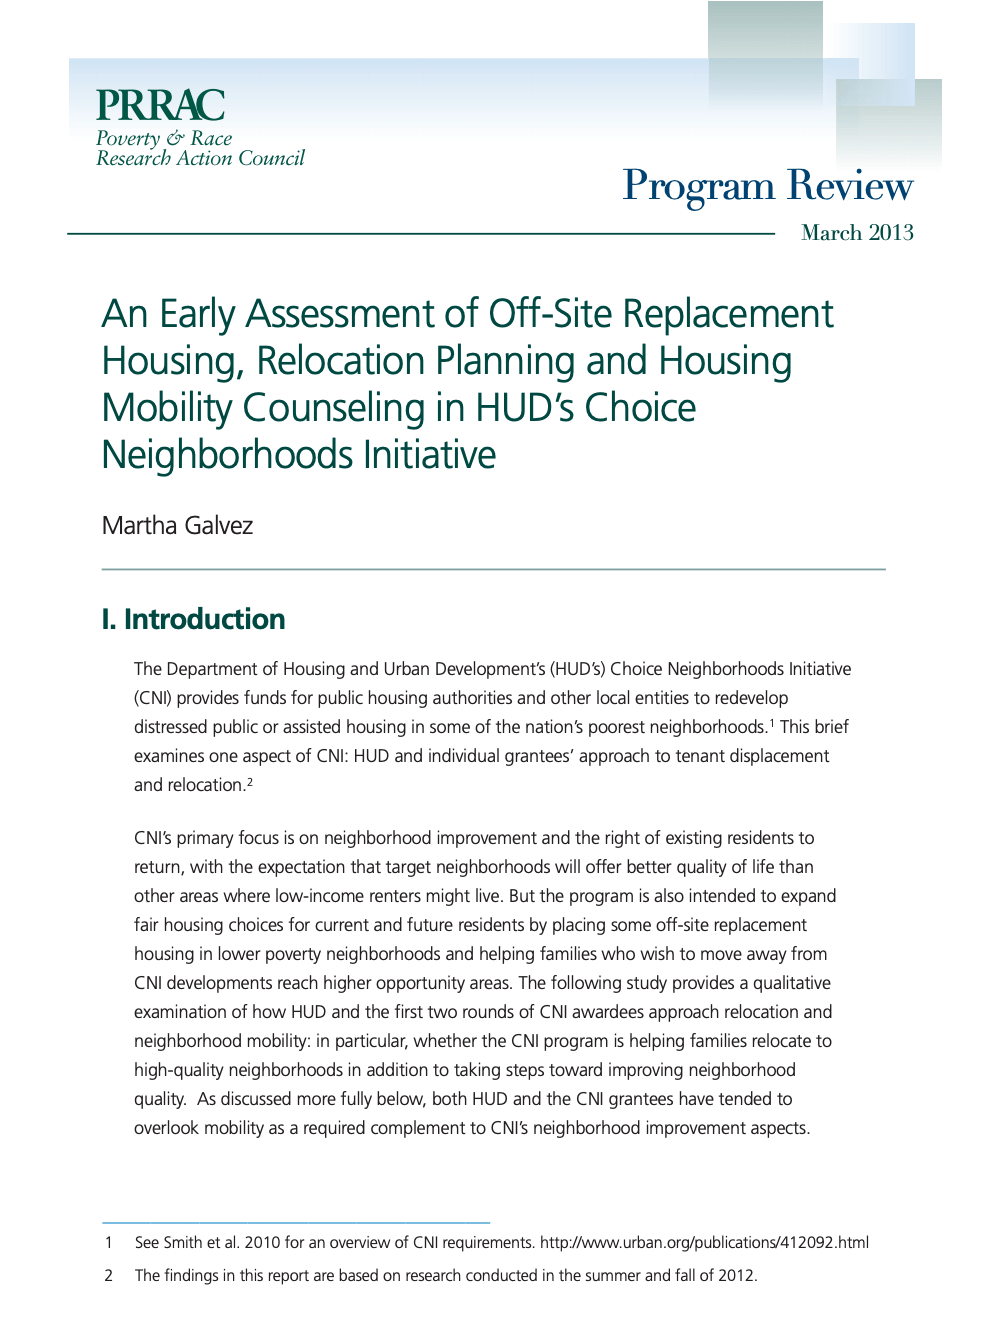 An Early Assessment of Off-Site Replacement Housing